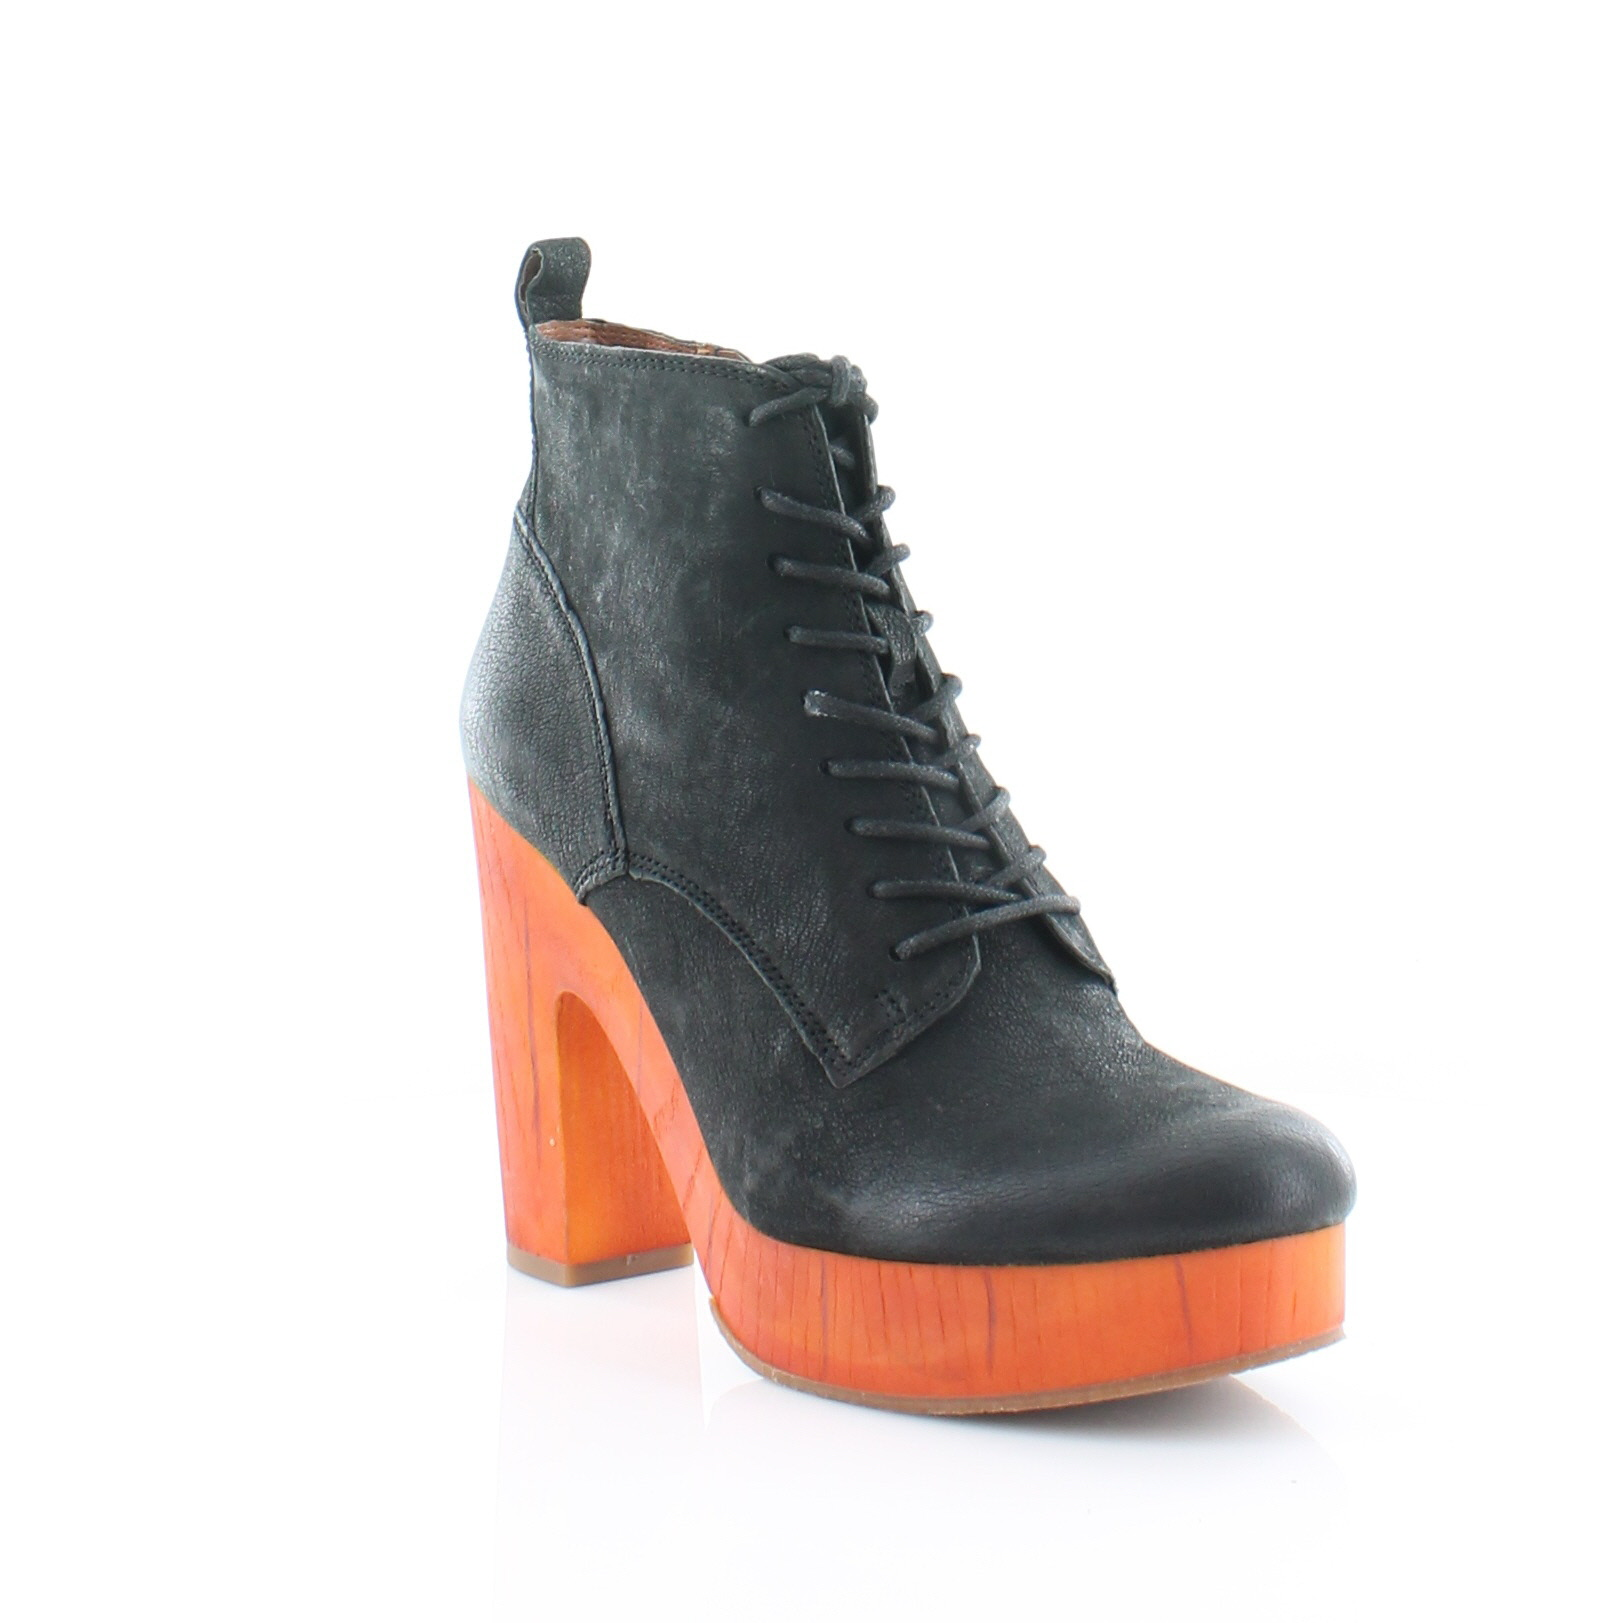 Gentleman/Lady Lucky Brand Tafari Women's Boots Black Not so expensive Skilled manufacturing List of explosions